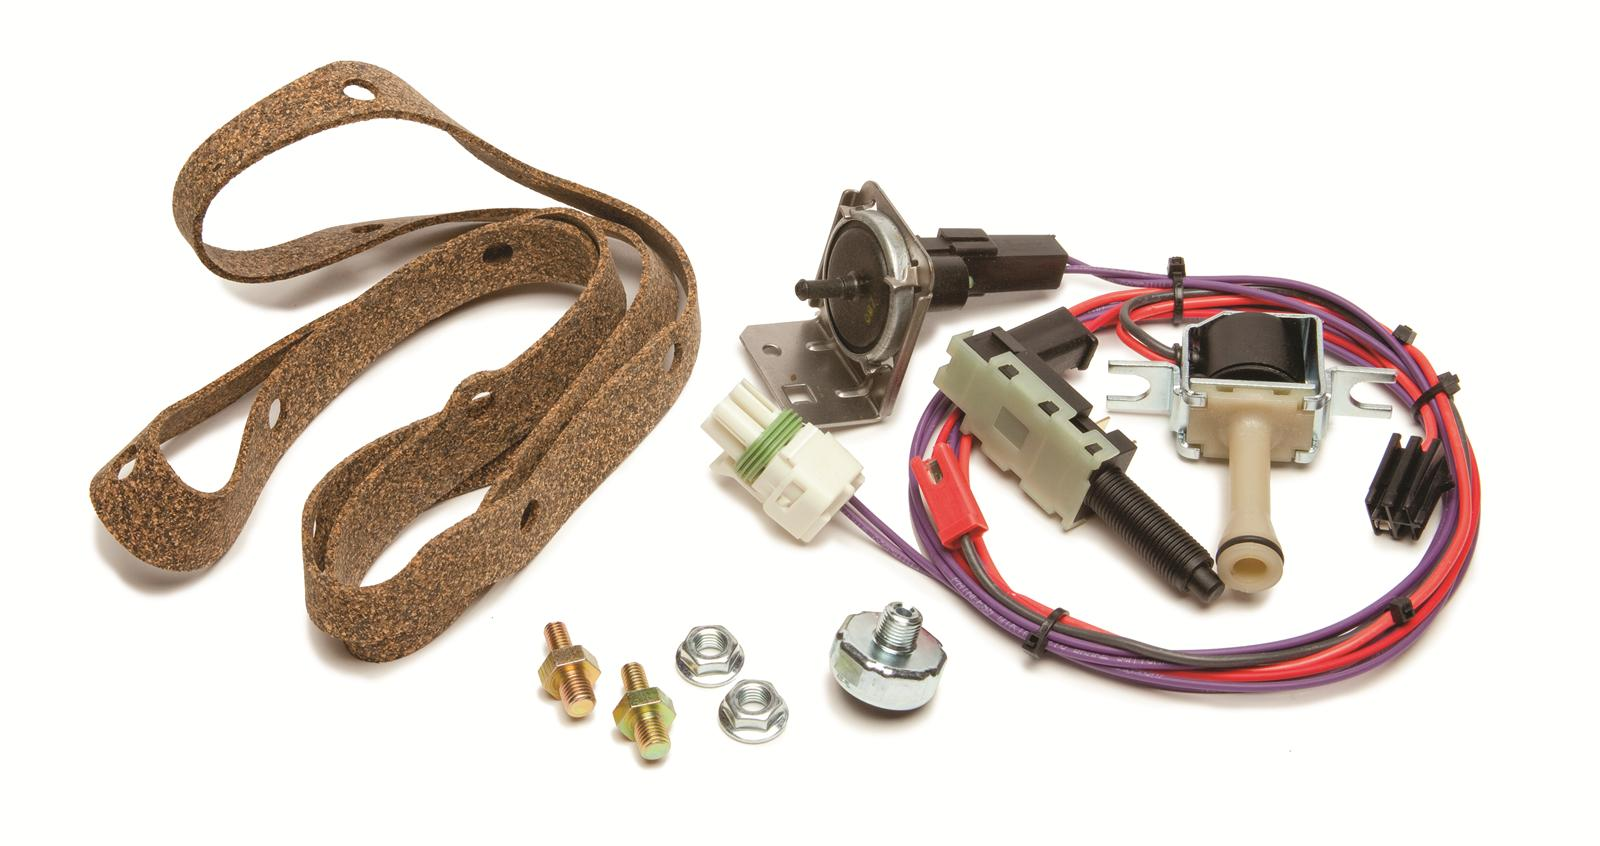 painless wiring 60110 wiring harness torque converter lockup gm 200 4r ea ebay